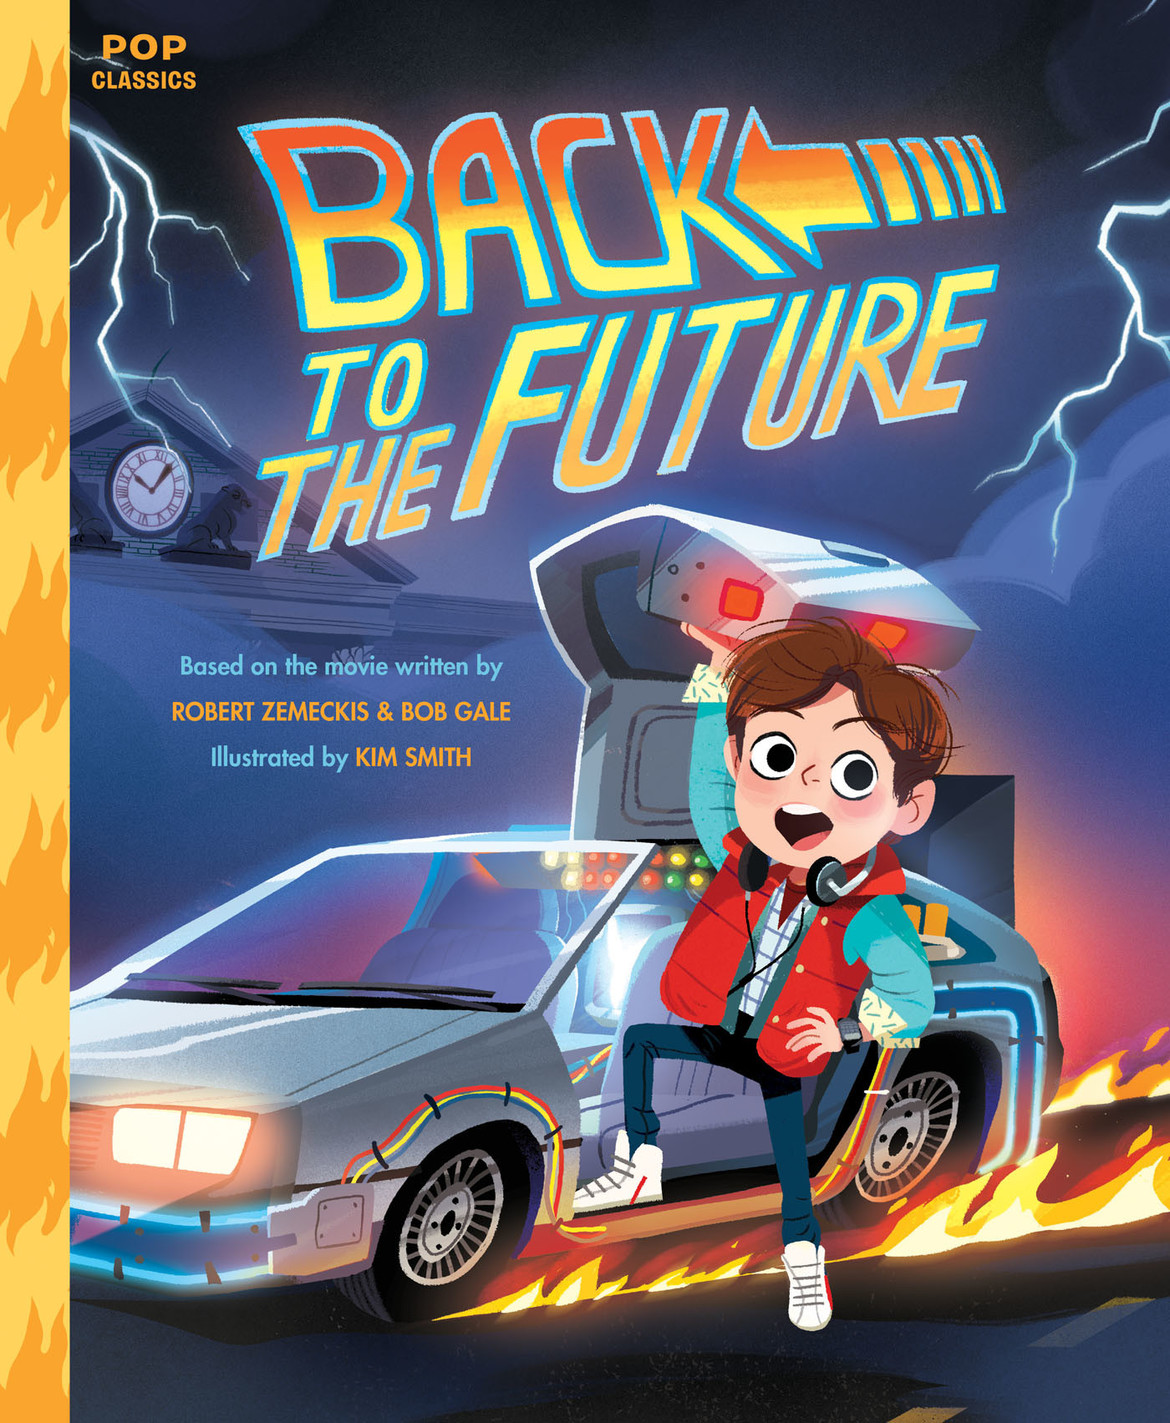 back_to_the_future_cover.jpg